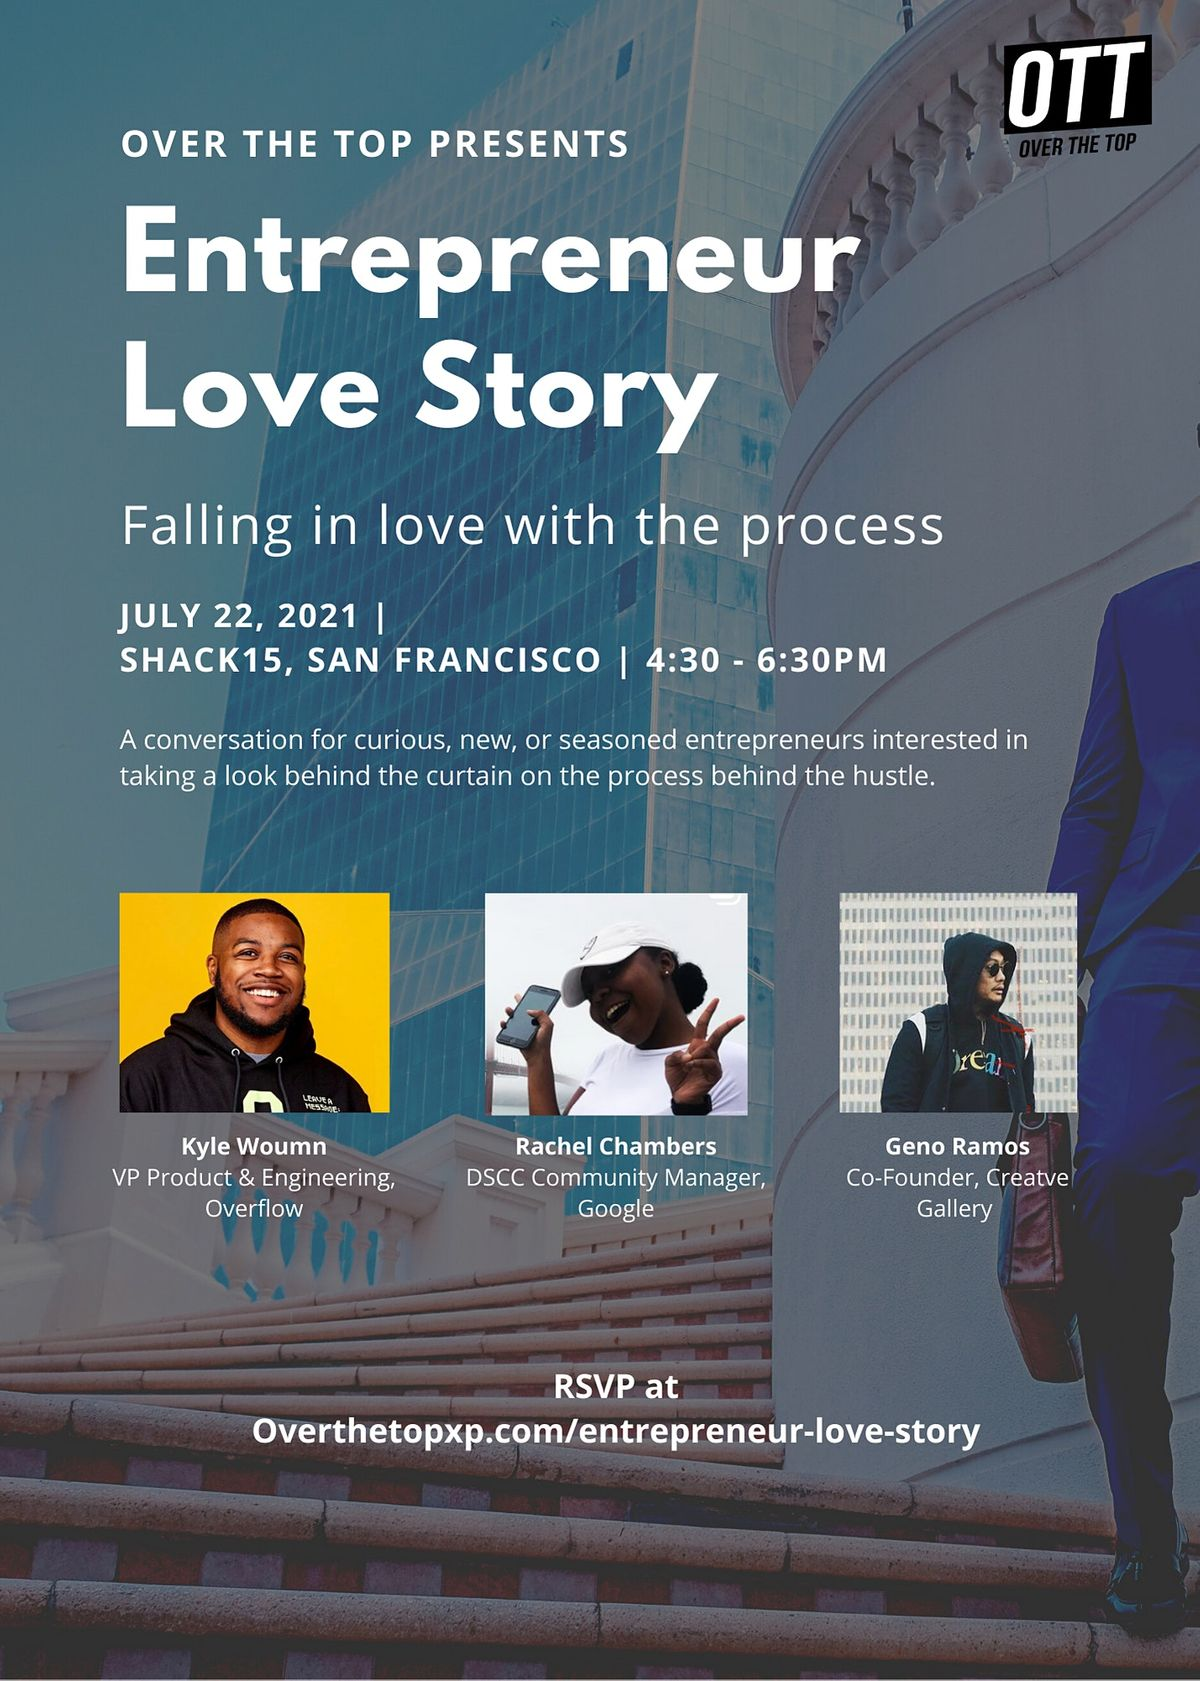 Entrepreneur Love Story: Falling in love with the process